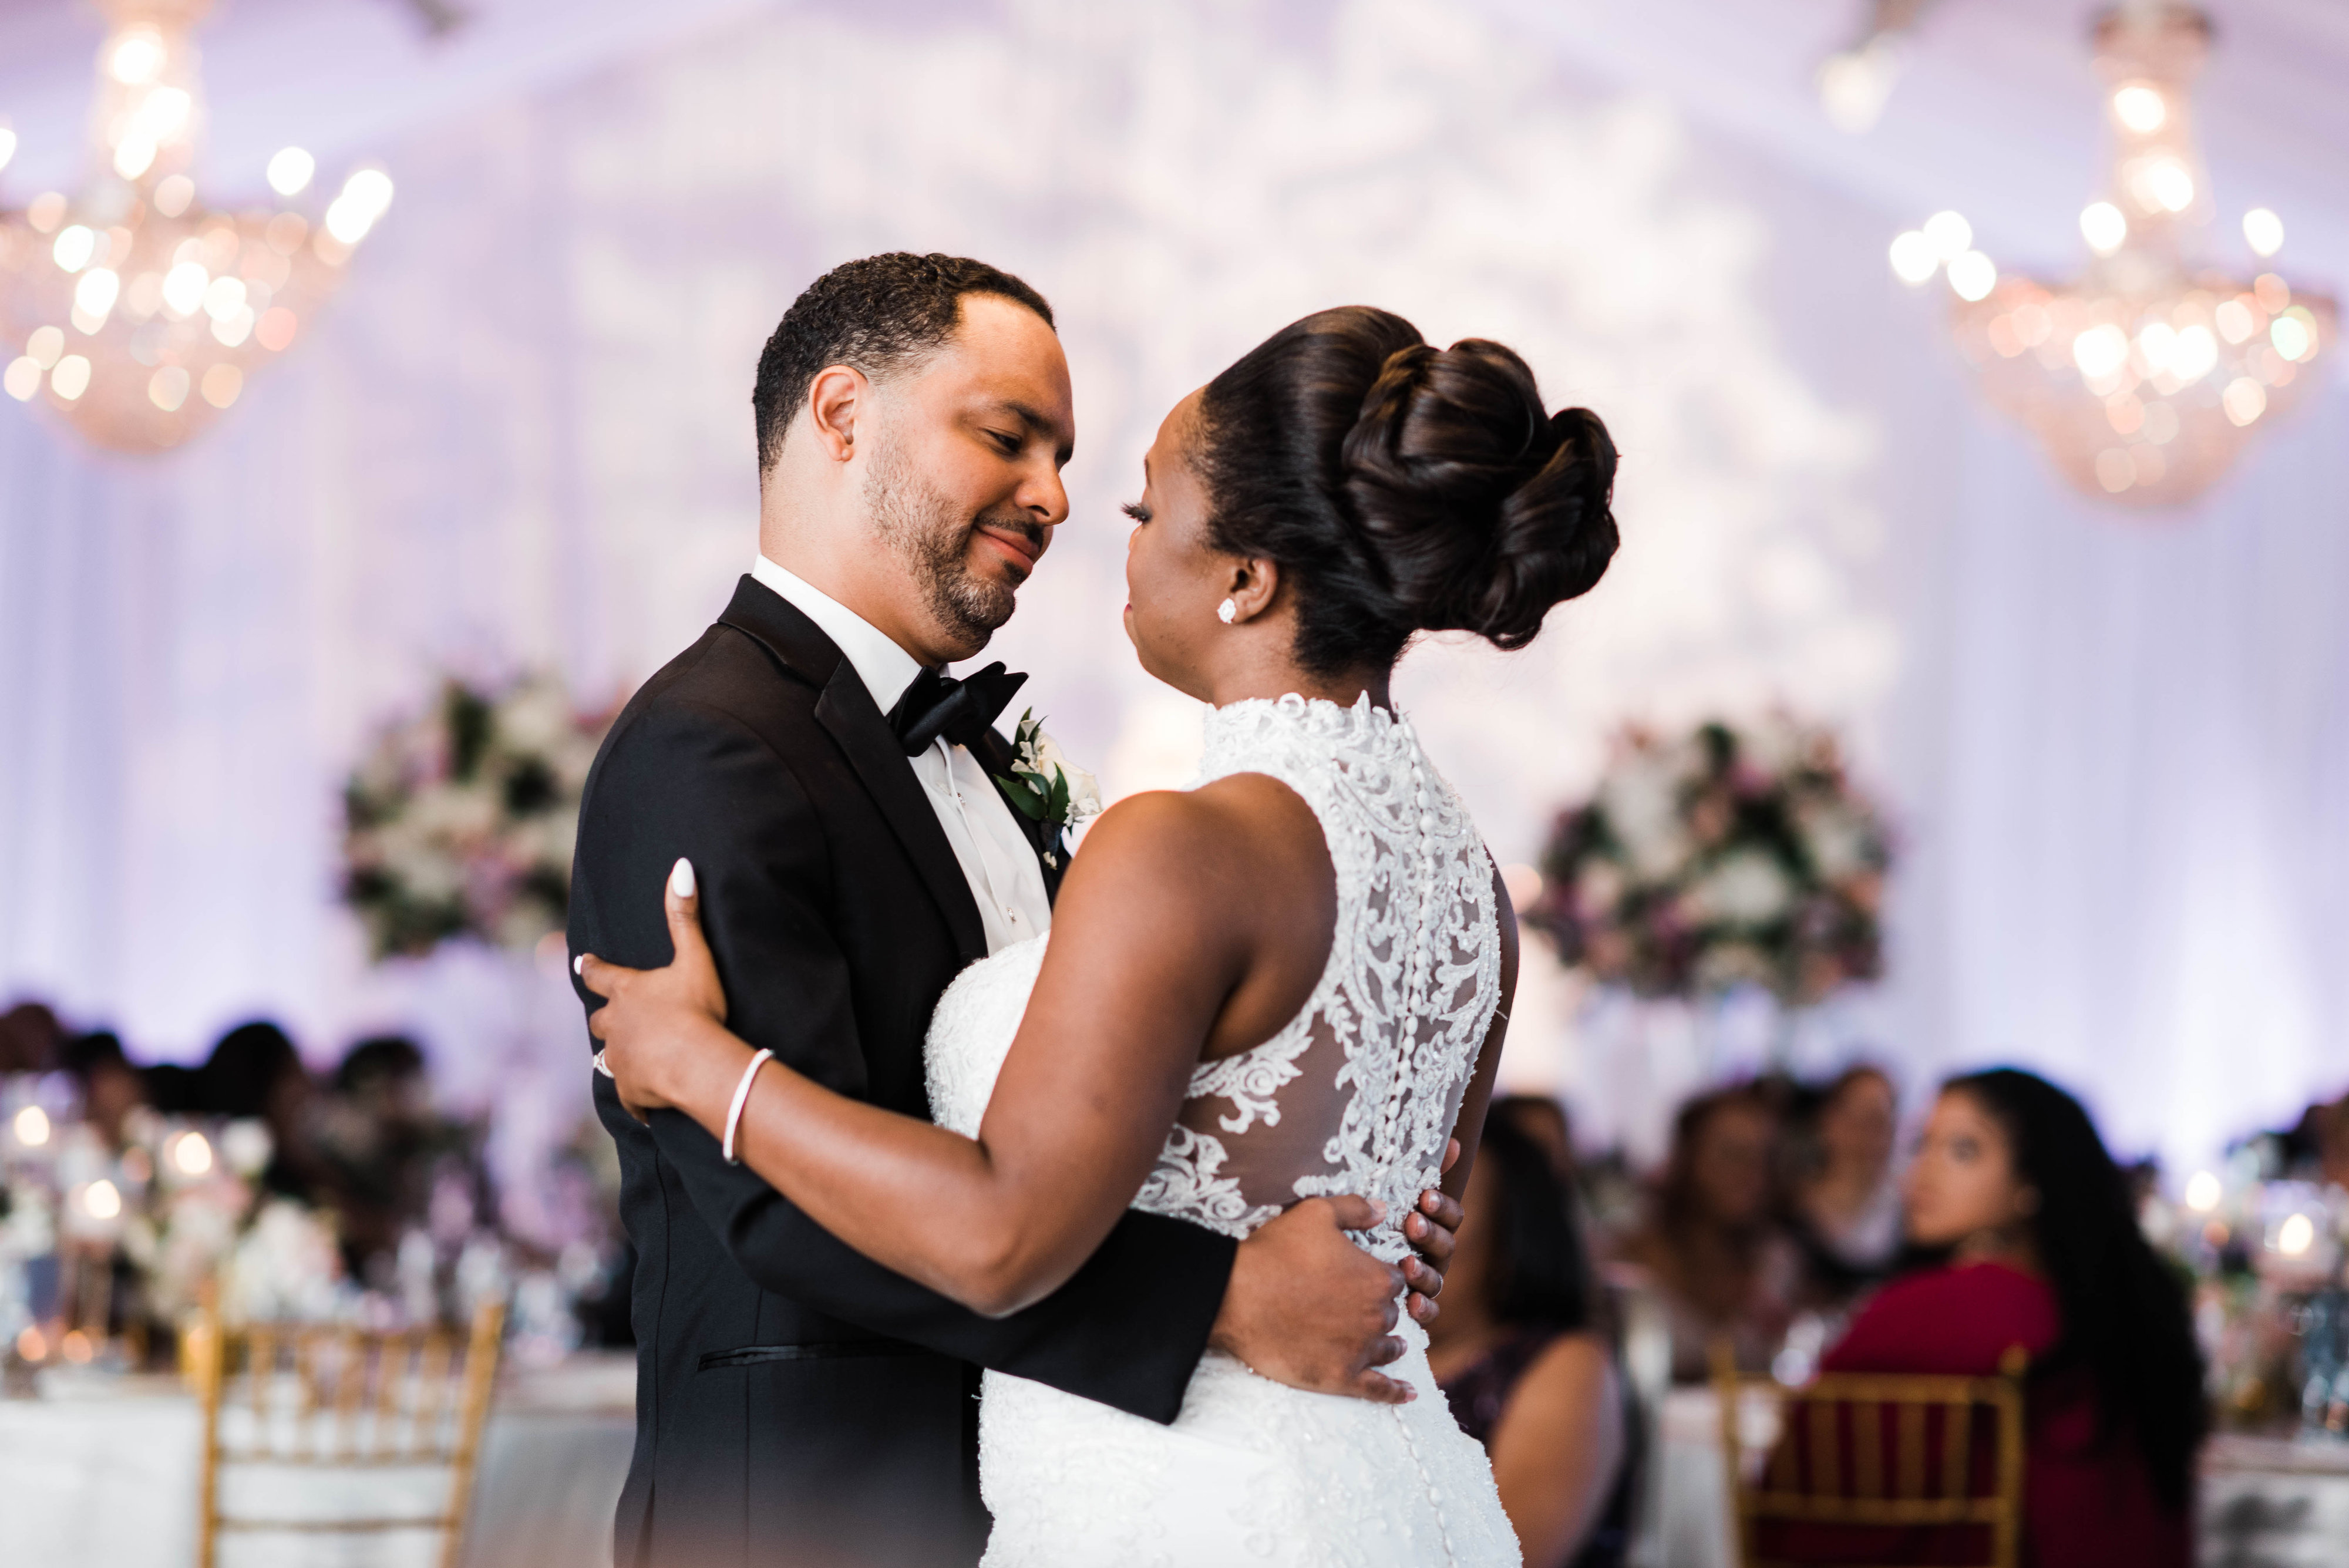 bride and groom hold each other during first dance at wedding reception